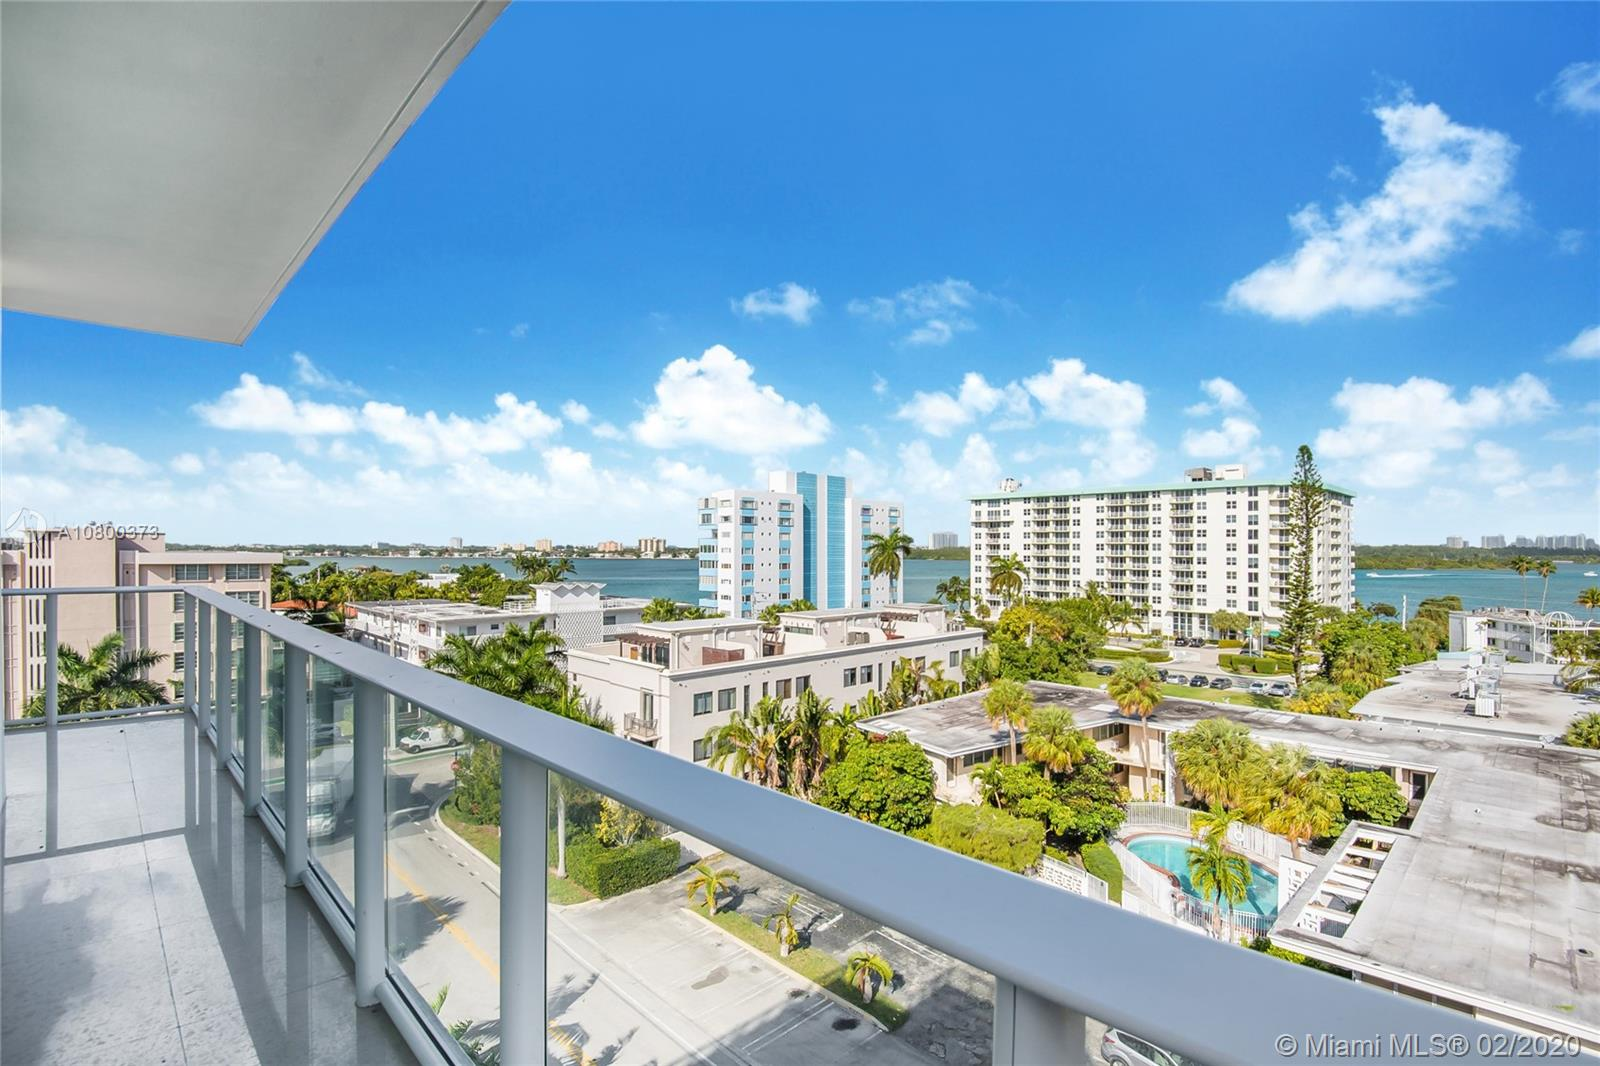 Gorgeous boutique building in the exclusive area of Bay Harbor Island. Le Jardind is a full service building with great amenities, rooftop terrace with a pool, 24 hrs concierge, you can enjoy the panoramic views of Miami. only 30 units in the building, custom cabinetry, 9' ceilings. Top of the line public schools. Walking distance to Bal Harbor Shops.